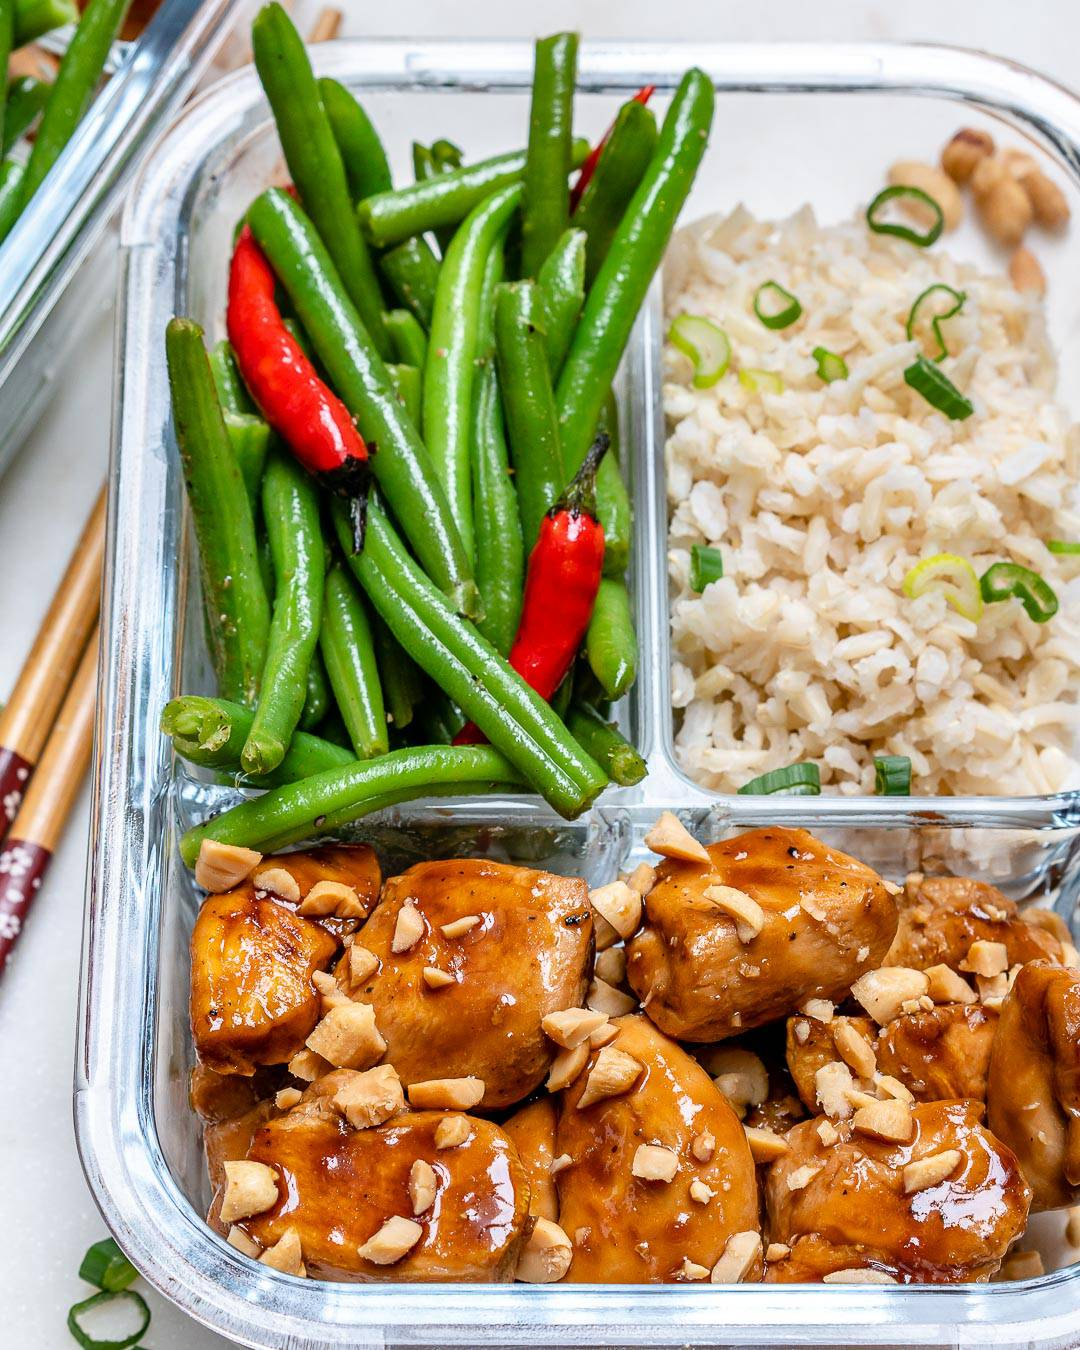 Kung pao chicken in a glass container with beans and rice.